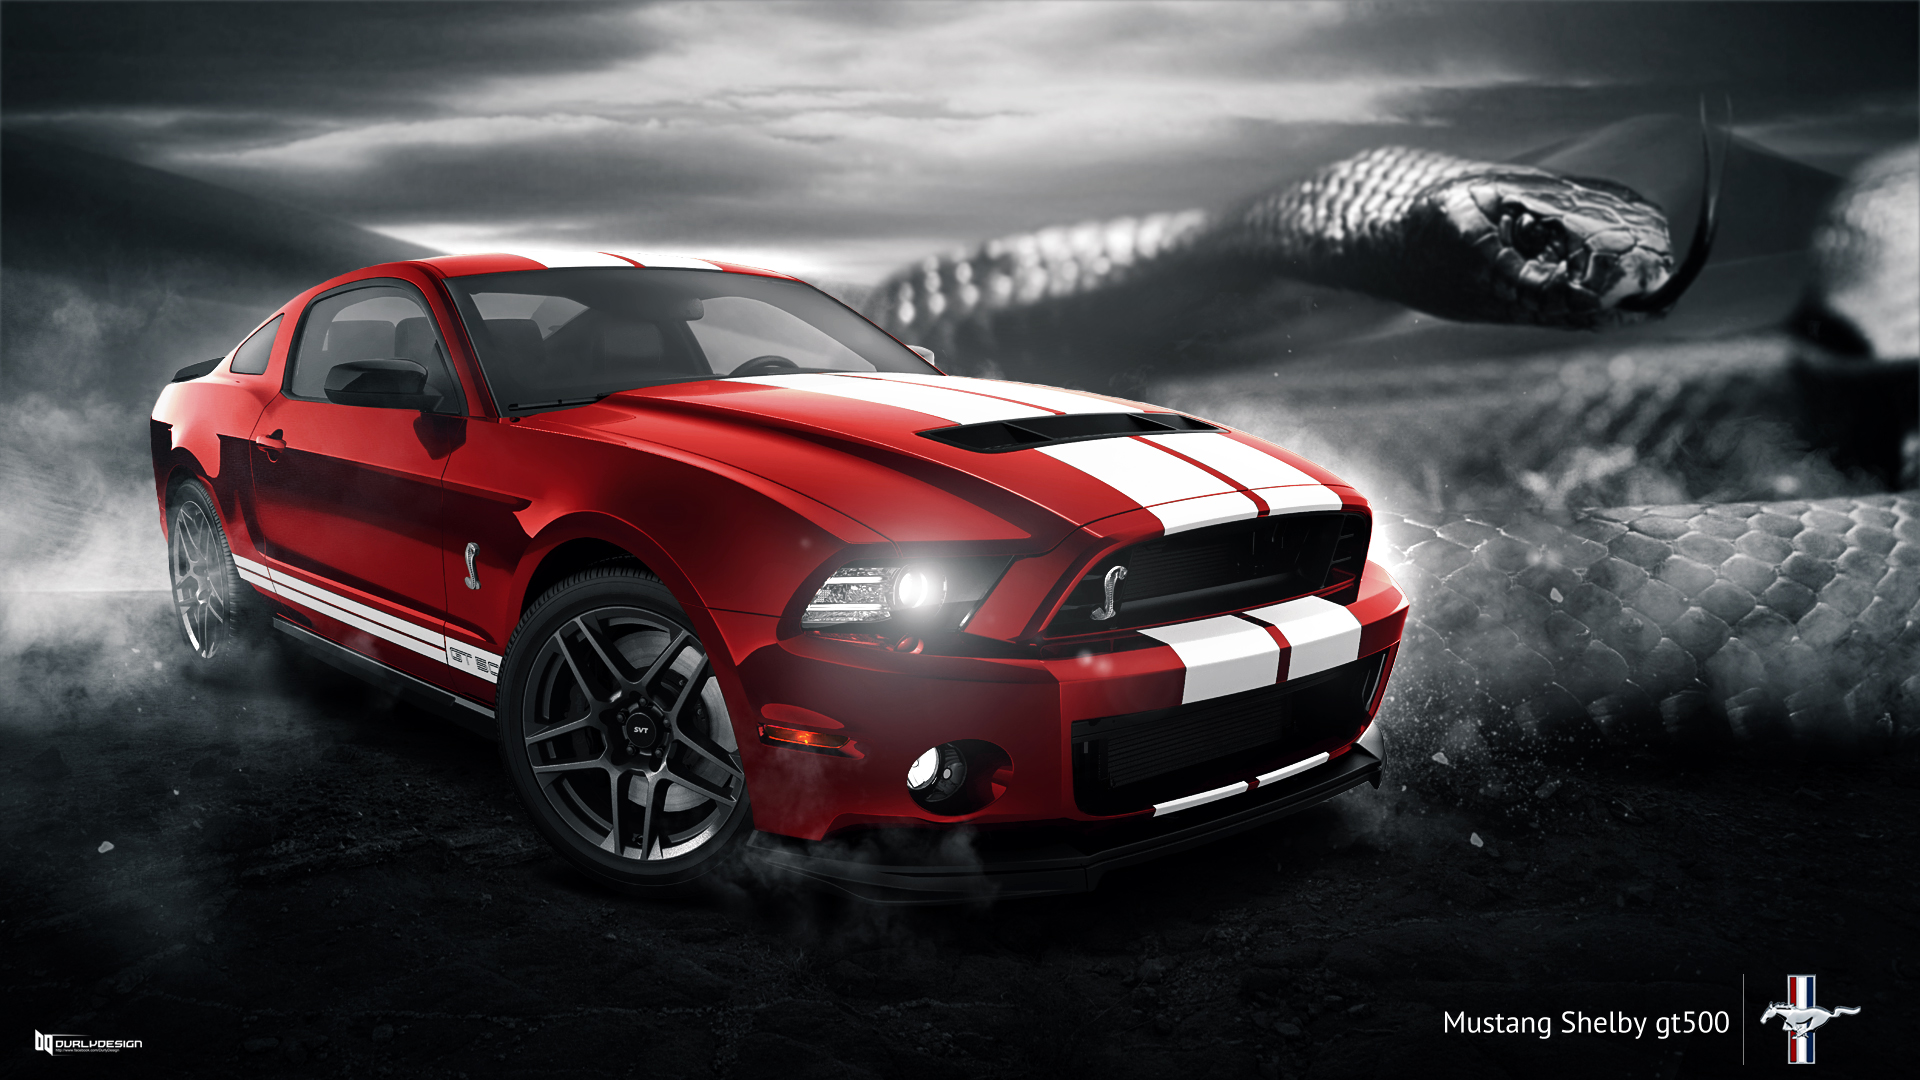 Shelby GT500 Wallpaper  WallpaperSafari